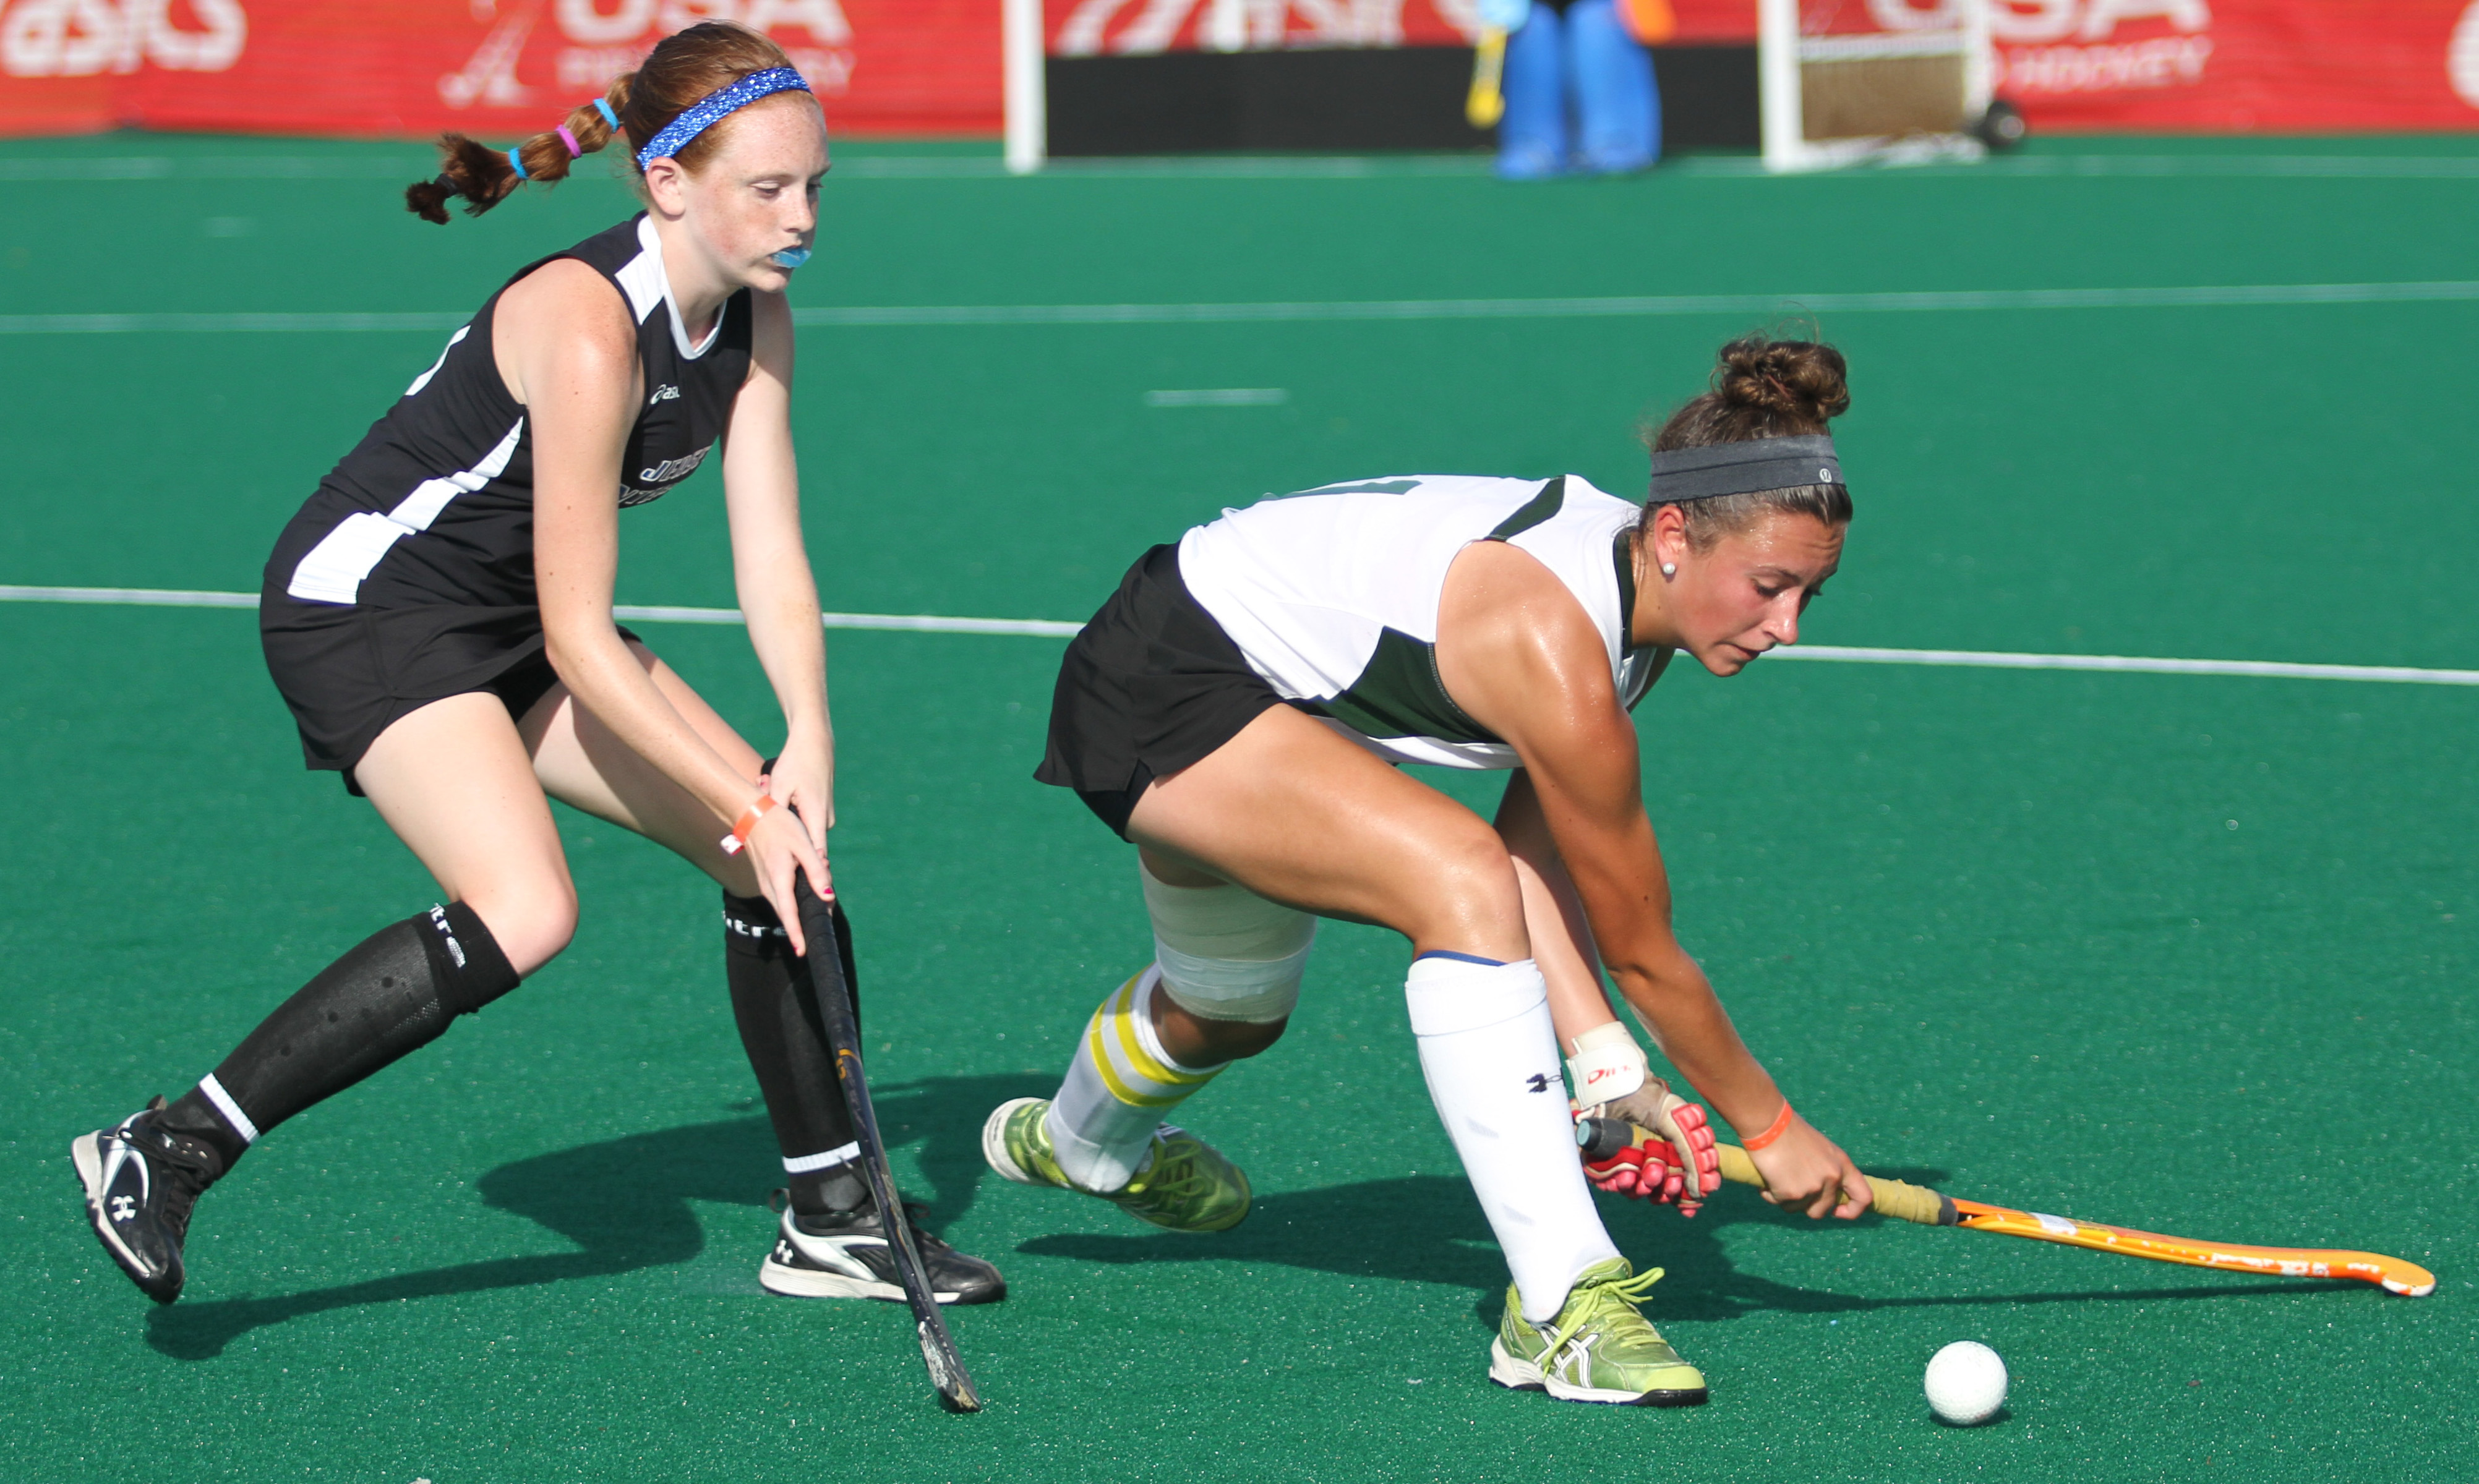 Field Hockey Pics, Sports Collection